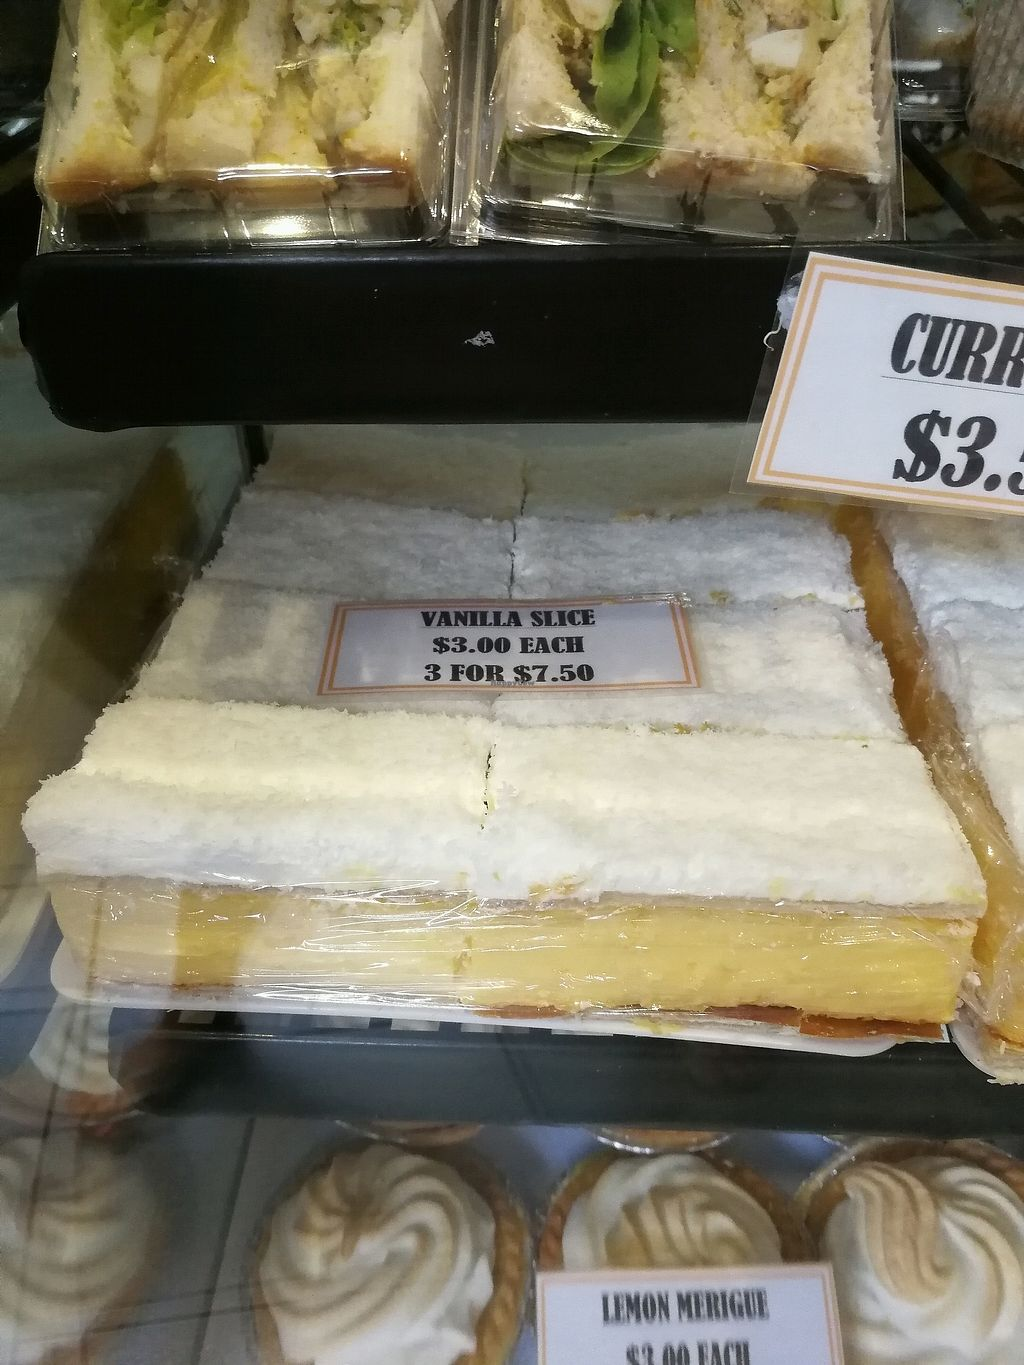 """Photo of Findon Bakehouse  by <a href=""""/members/profile/JanineBarthel"""">JanineBarthel</a> <br/>vegan vanilla slices <br/> December 24, 2017  - <a href='/contact/abuse/image/107800/338651'>Report</a>"""